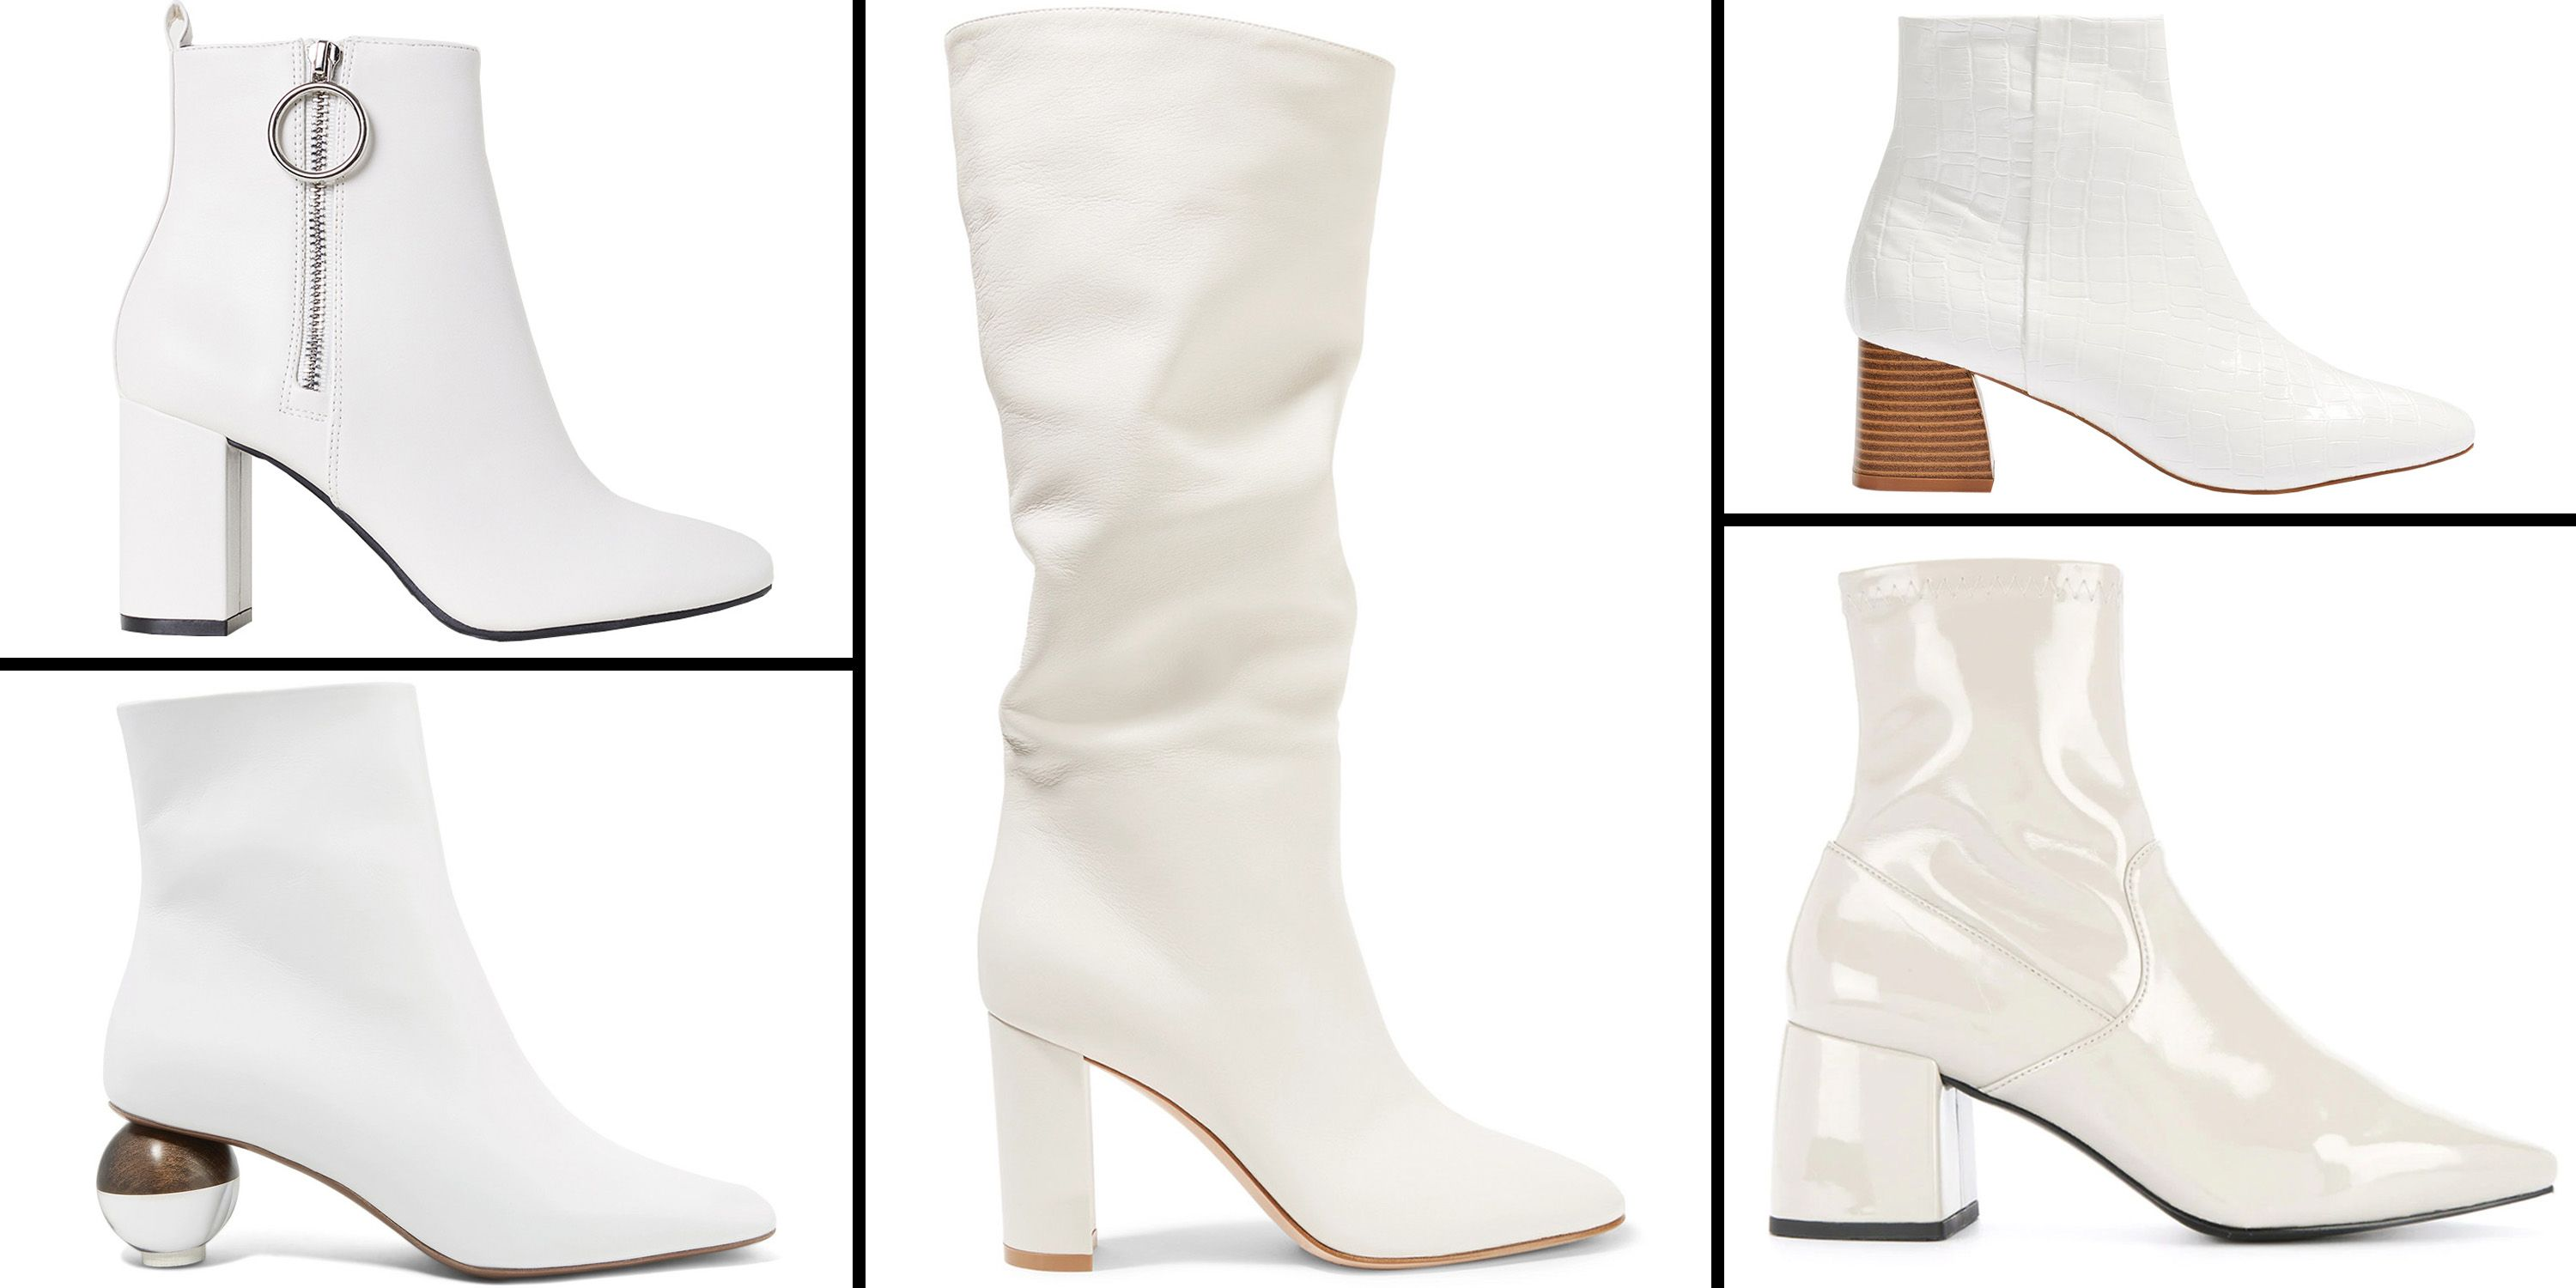 White Photo The 16 Best White Boots To Shop For Fall 2018 White Boots For Women